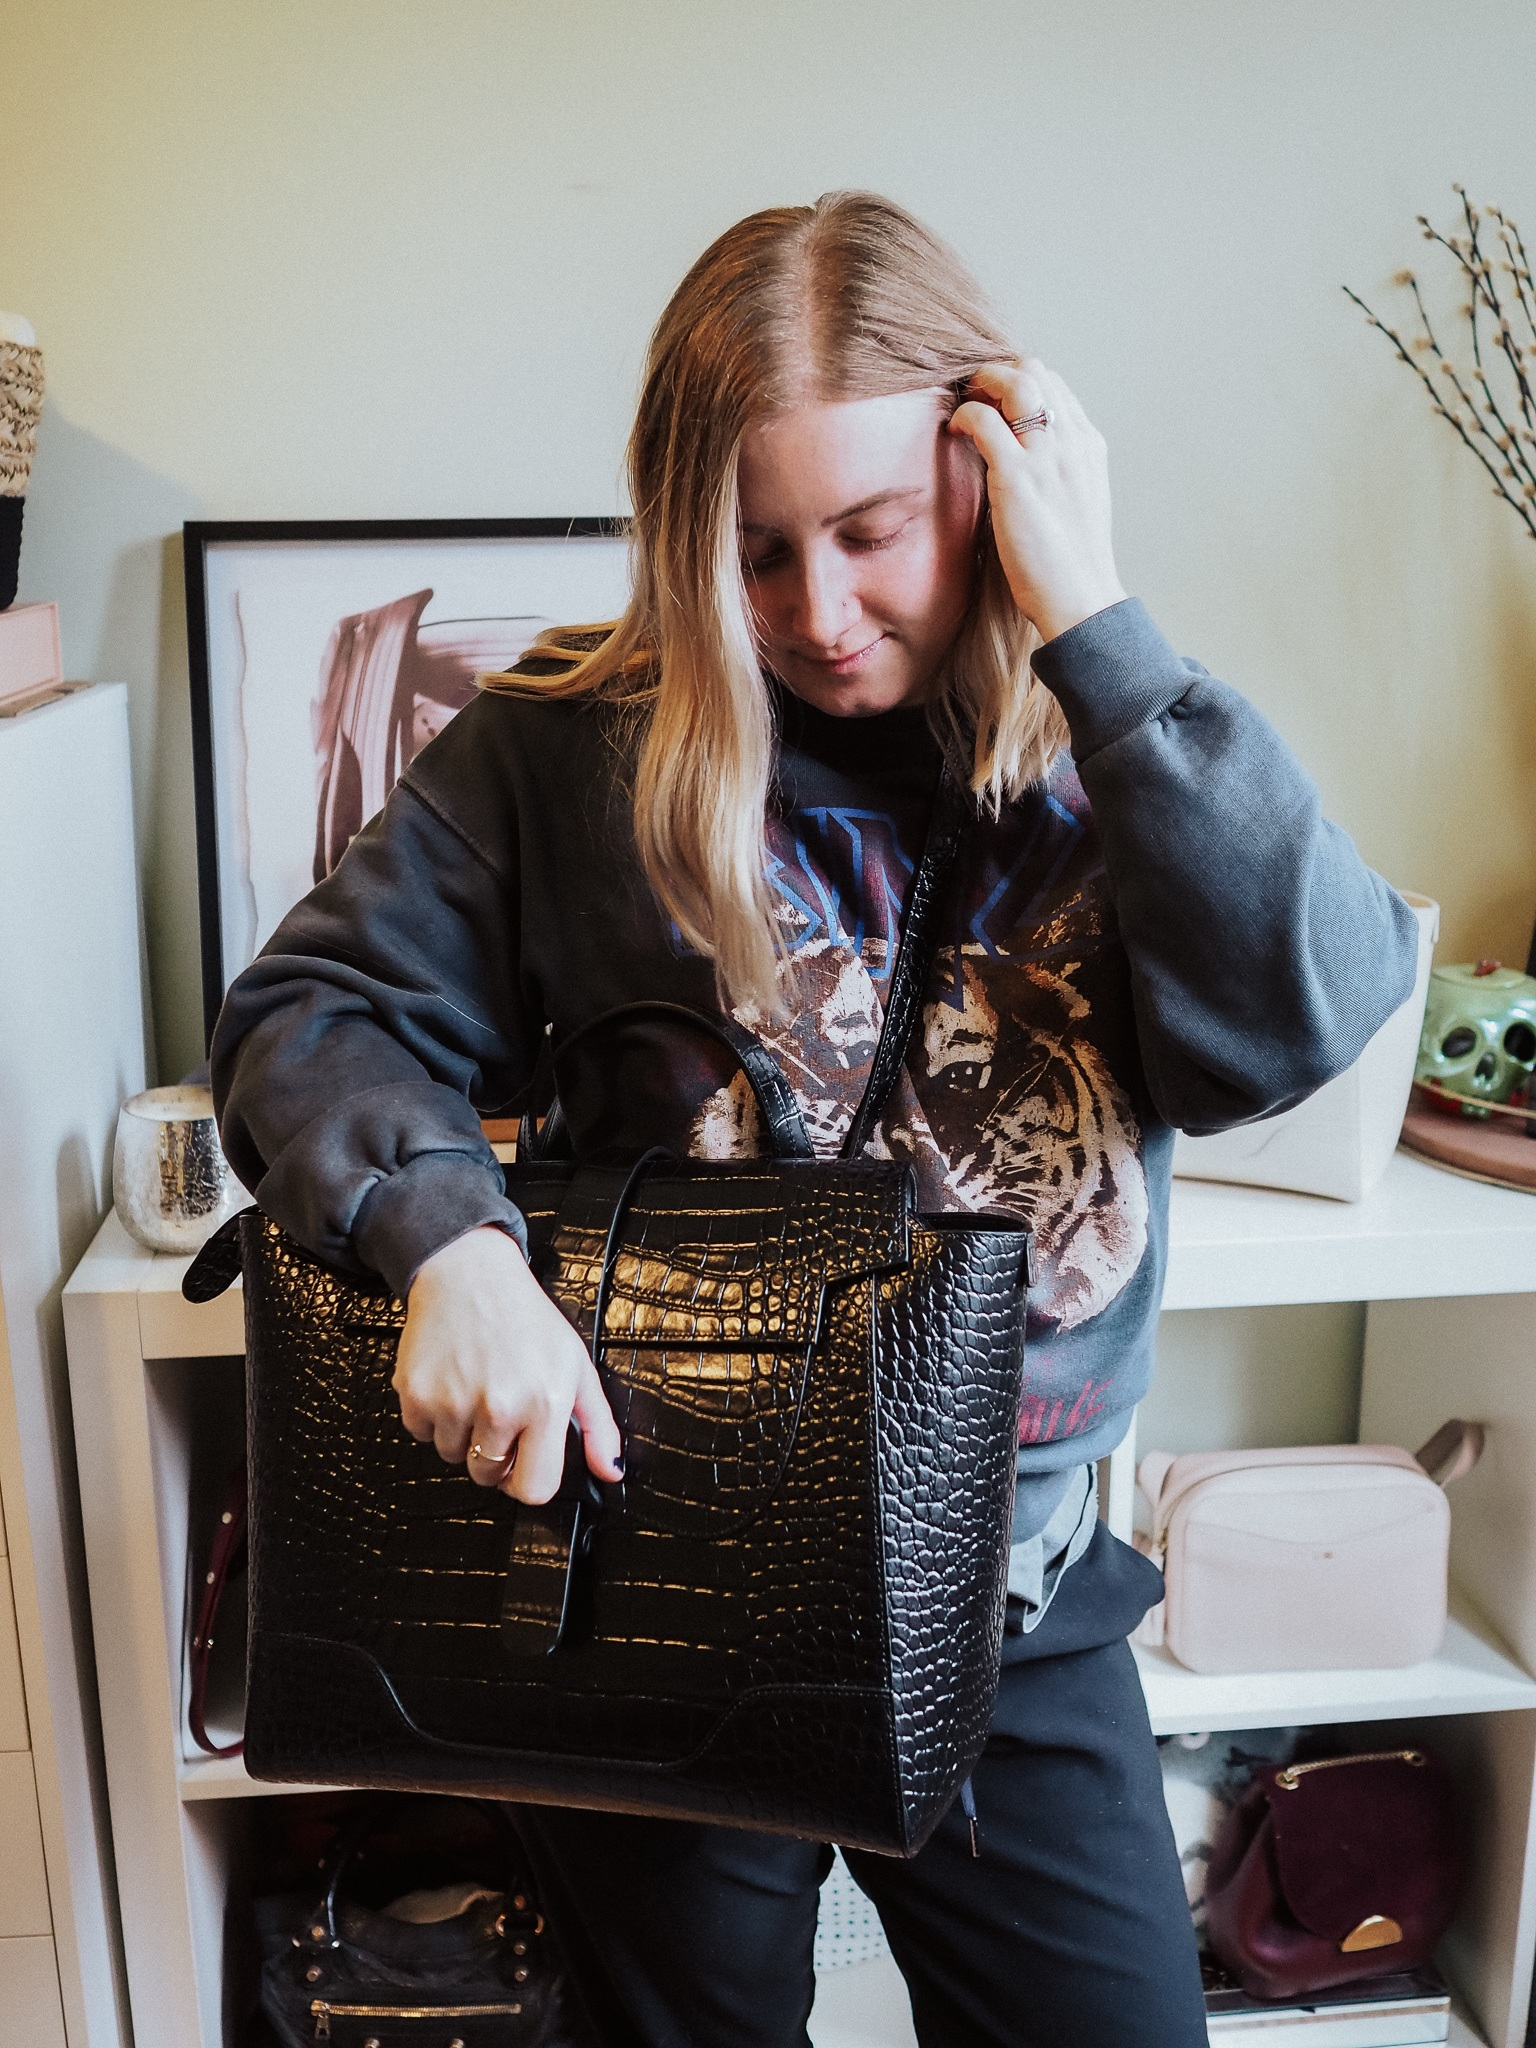 Find out if the Senreve Maestra bag is worth the price in this thorough Senreve review by Kelsey of Blondes and Bagels!